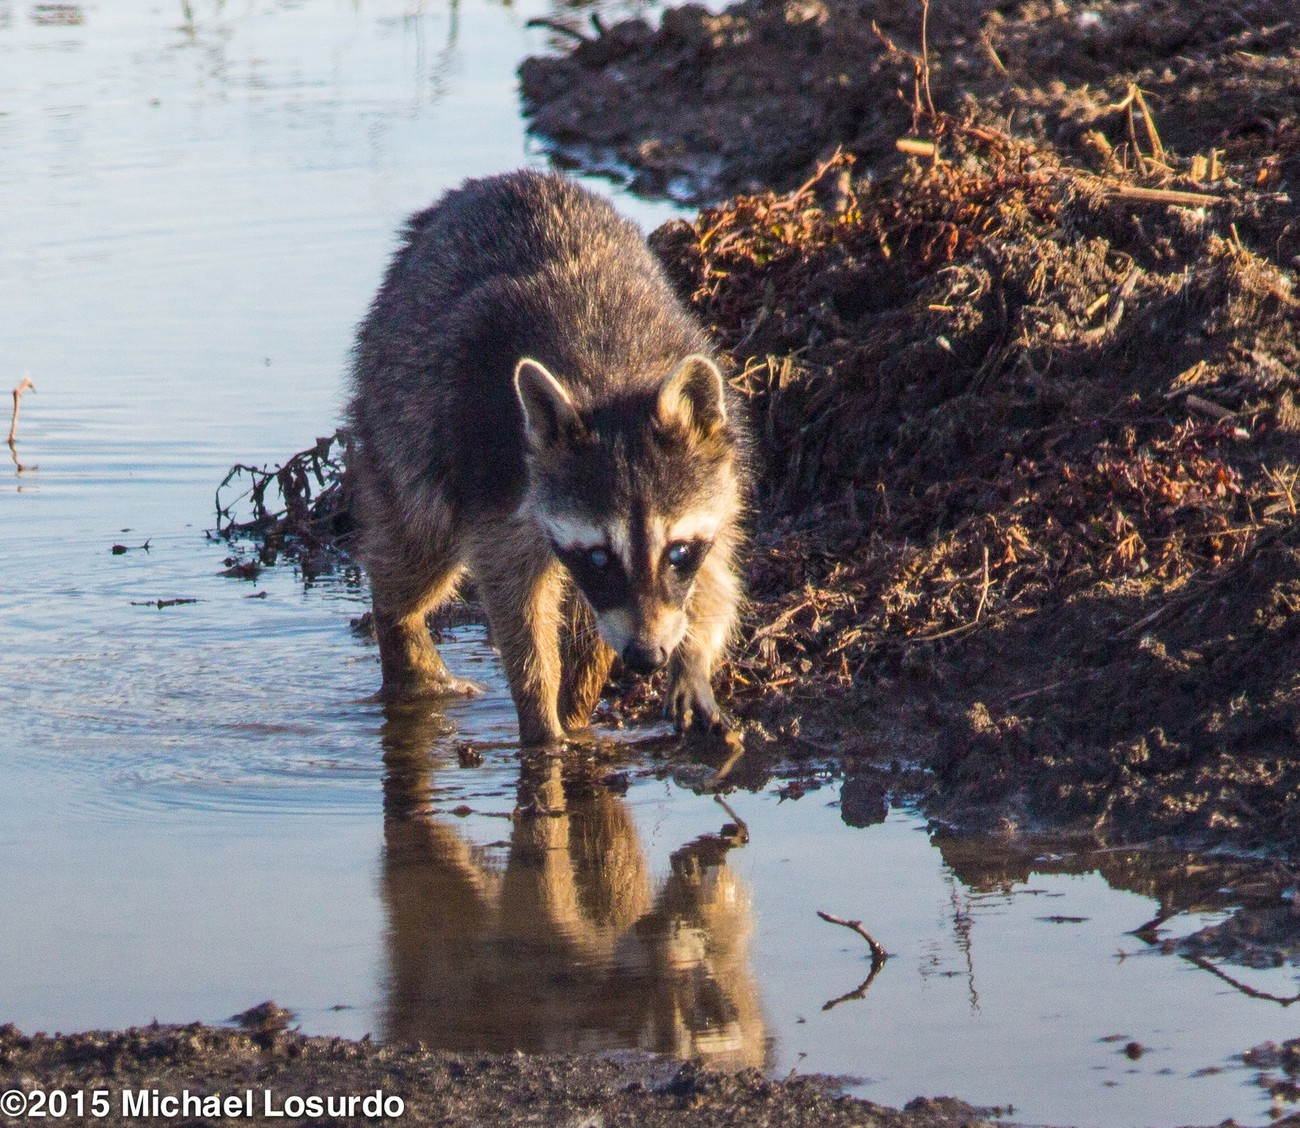 Raccoon getting a drink in the clear water at Haggerman Wildlife Refuge Sherman, TX